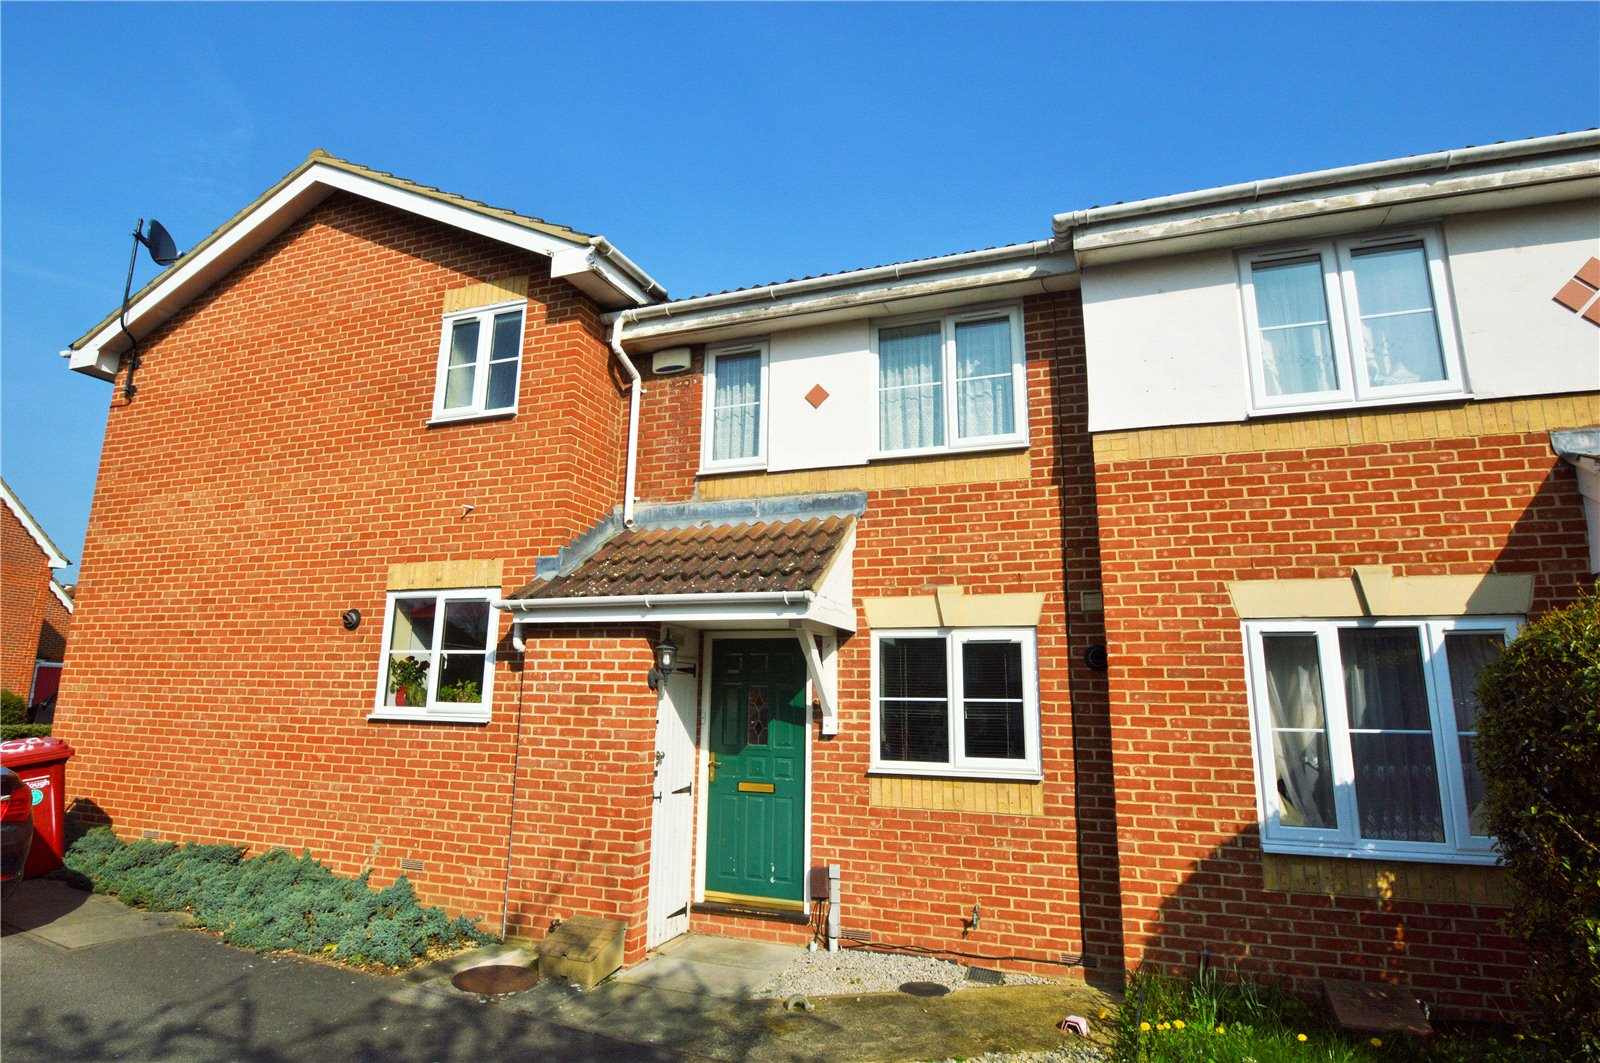 2 Bedrooms Terraced House for sale in Hunters Way, Slough, Berkshire, SL1